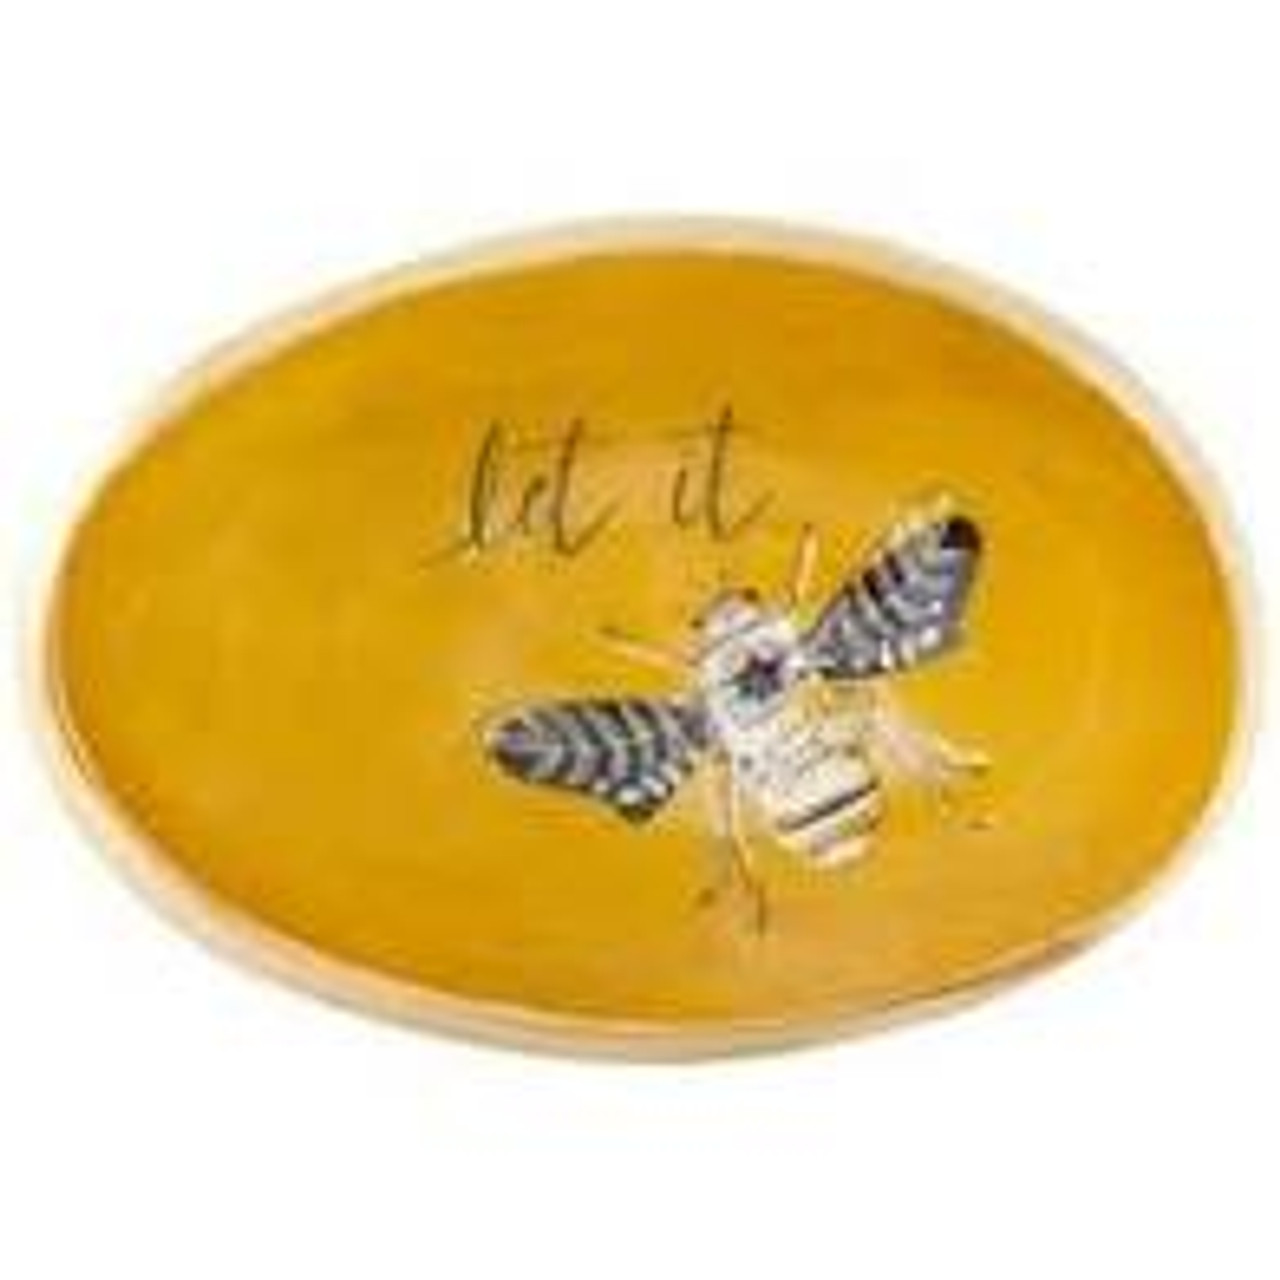 """This little organic egg-shaped bowl has a natural feel and is the perfect holder for all your smaller items and jewelry; the perfect little addition for your bedside table, bathroom, vanity, or anywhere you like. The bowl is golden mustard on the inside with """"let it"""" sentiment and a grey/white bee; soft gold on edge and outside. Approx 5.25"""" x 3.5"""" x 1.75"""""""